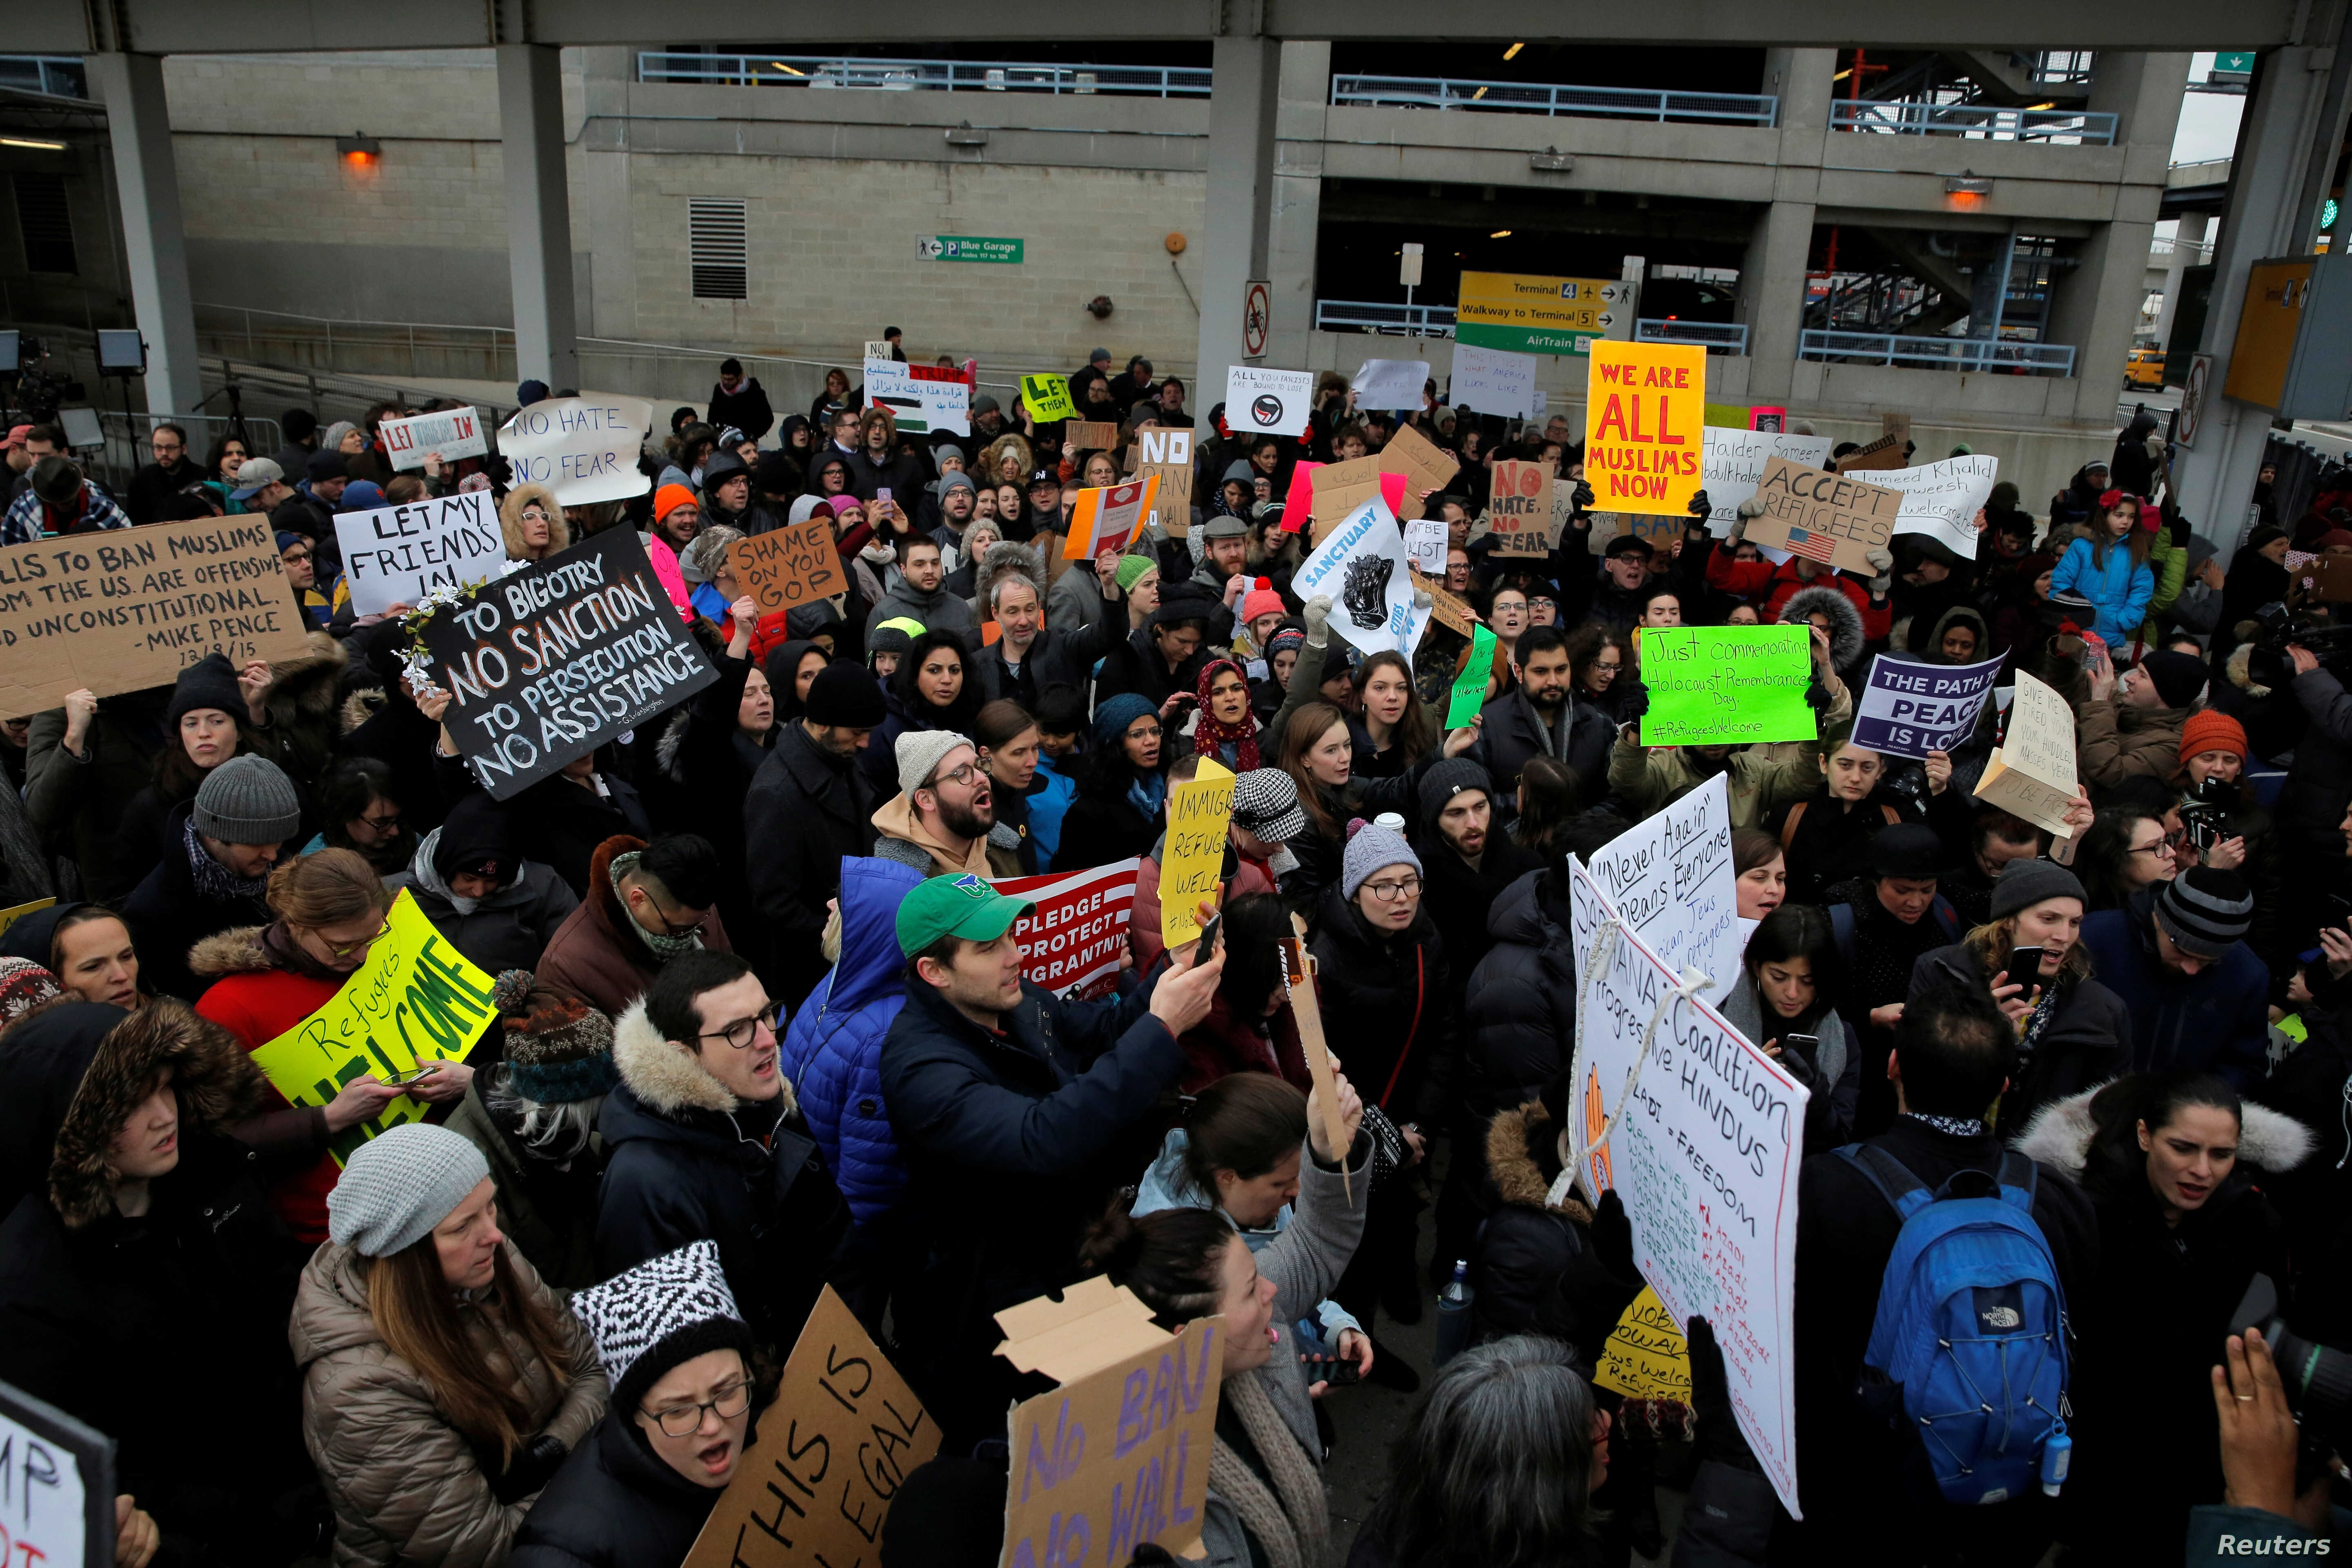 A crowd gathers during an anti-Donald Trump immigration ban protest outside Terminal 4 at John F. Kennedy International Airport in Queens, New York, Jan. 28, 2017.